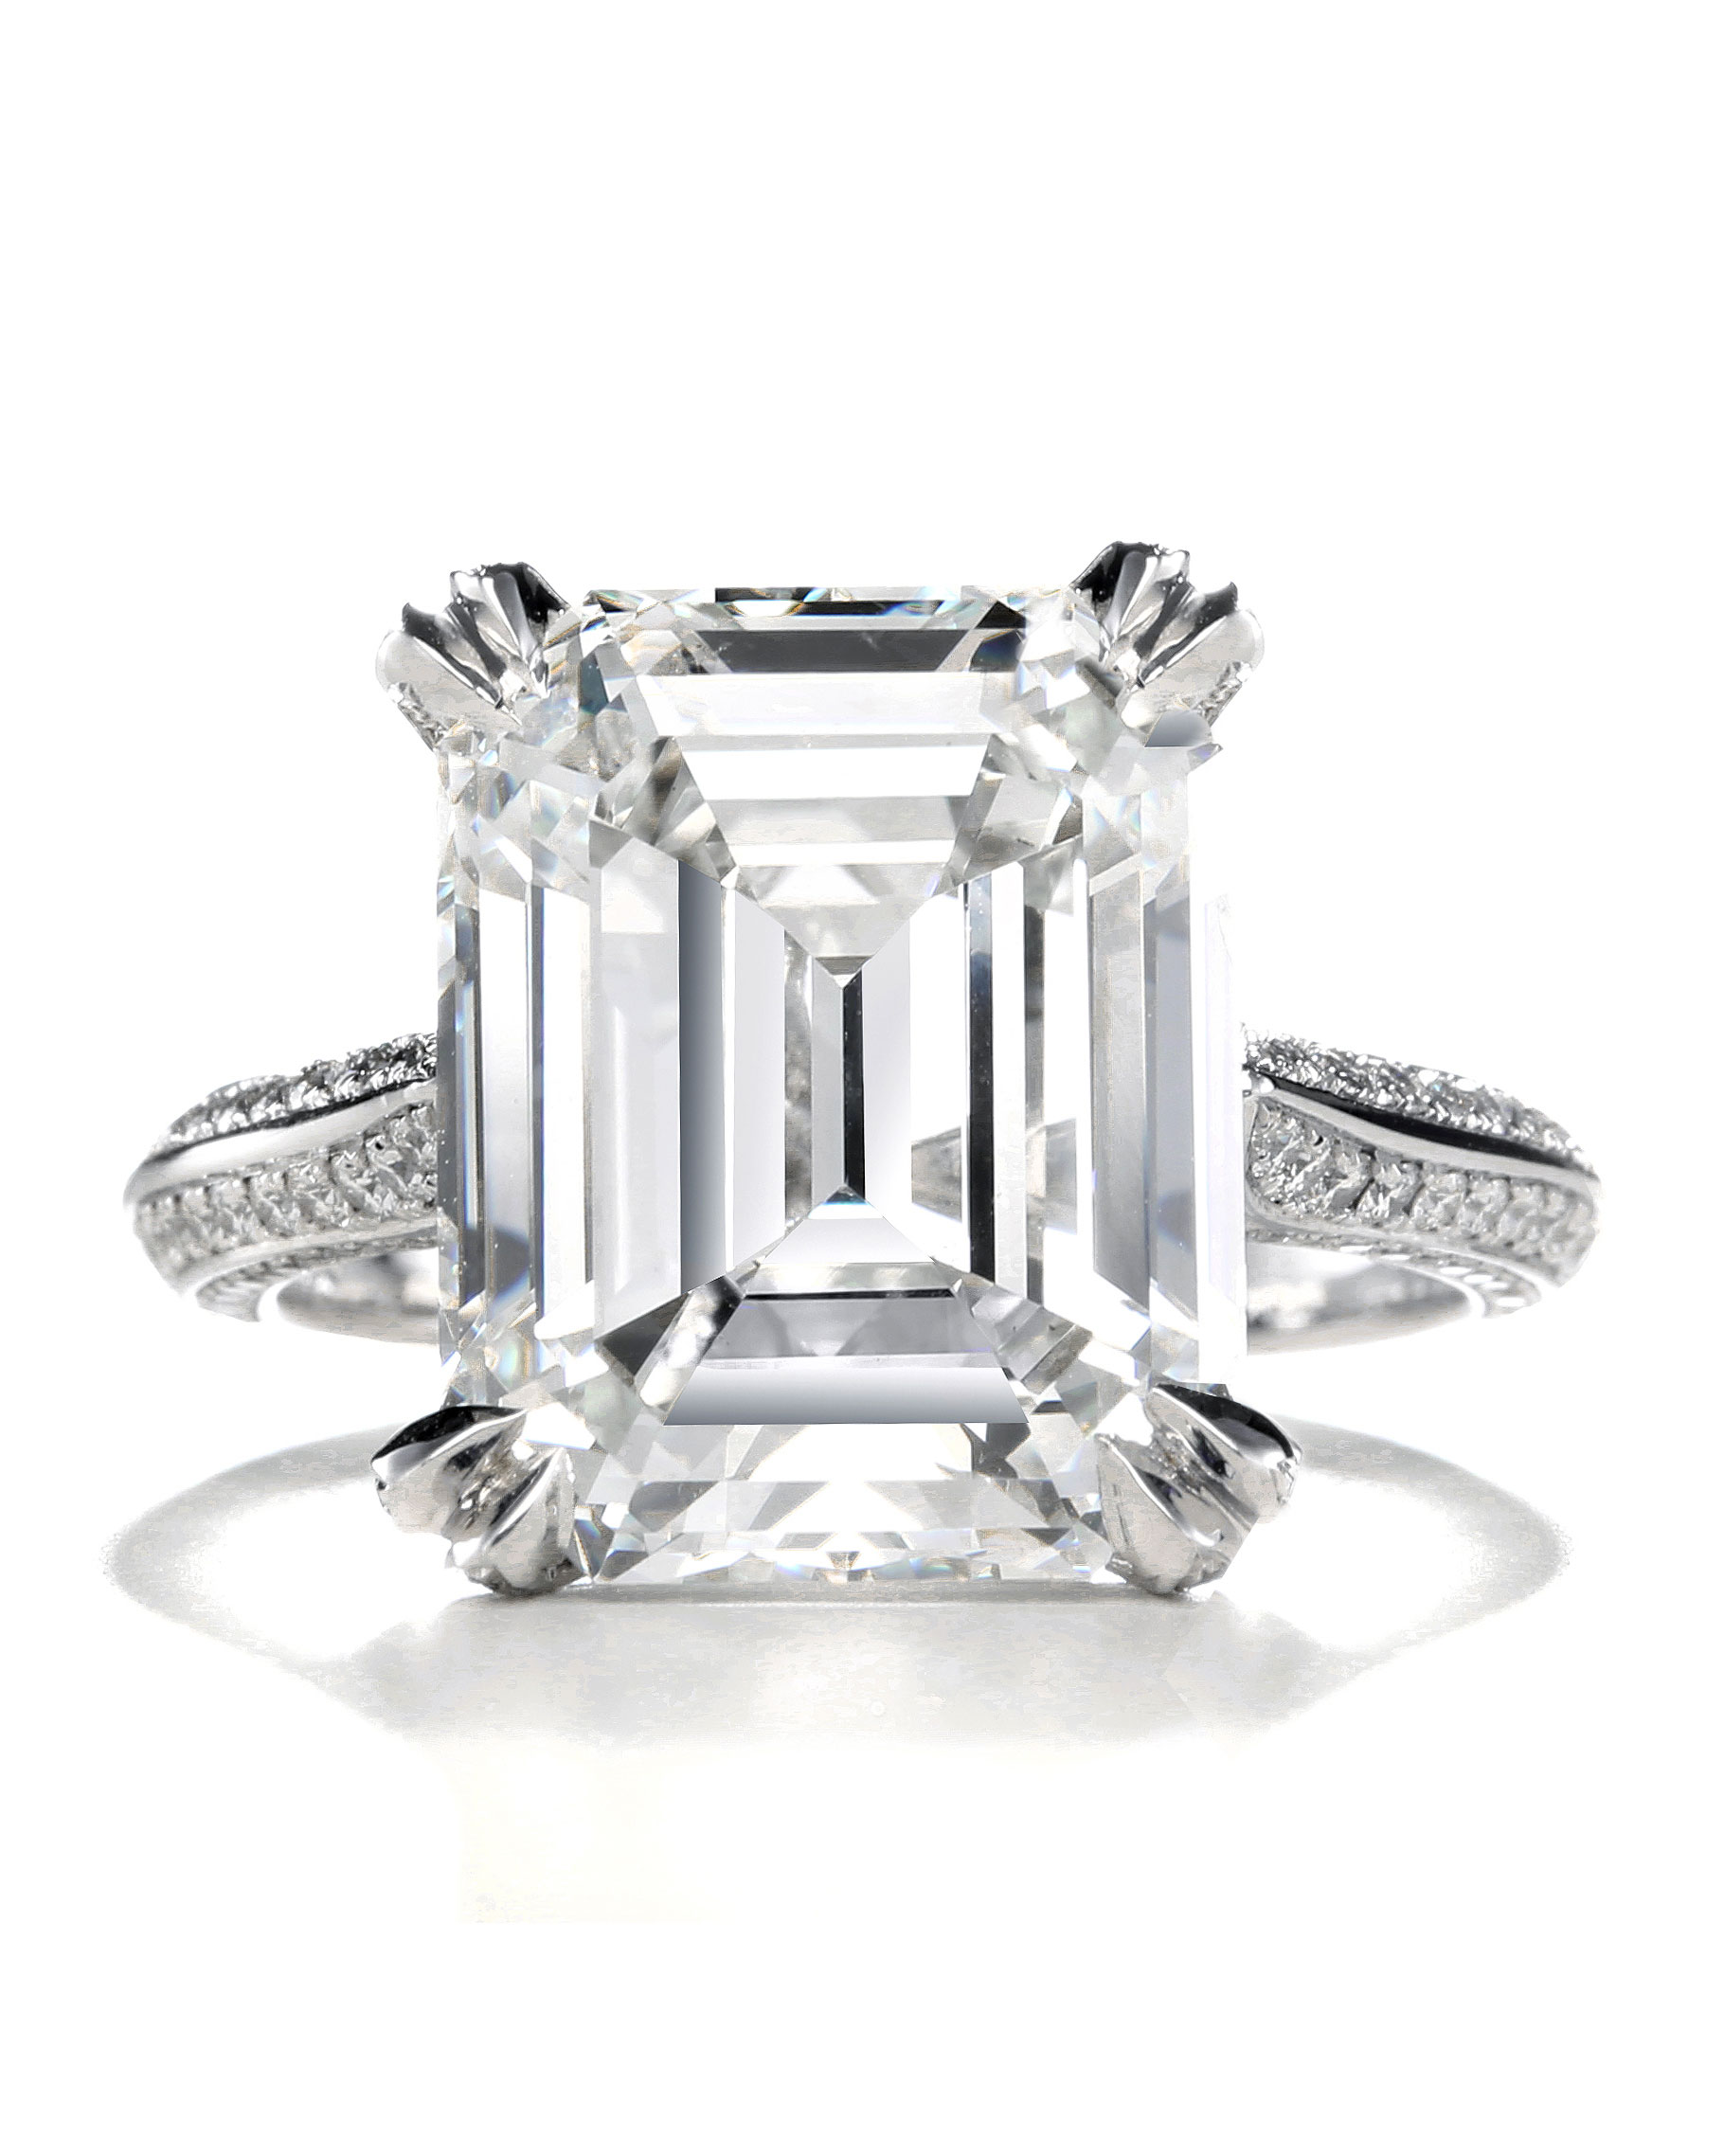 celebrity-rings-forevermark-exceptional-diamond-premier-gem-mariah-carey-0316.jpg